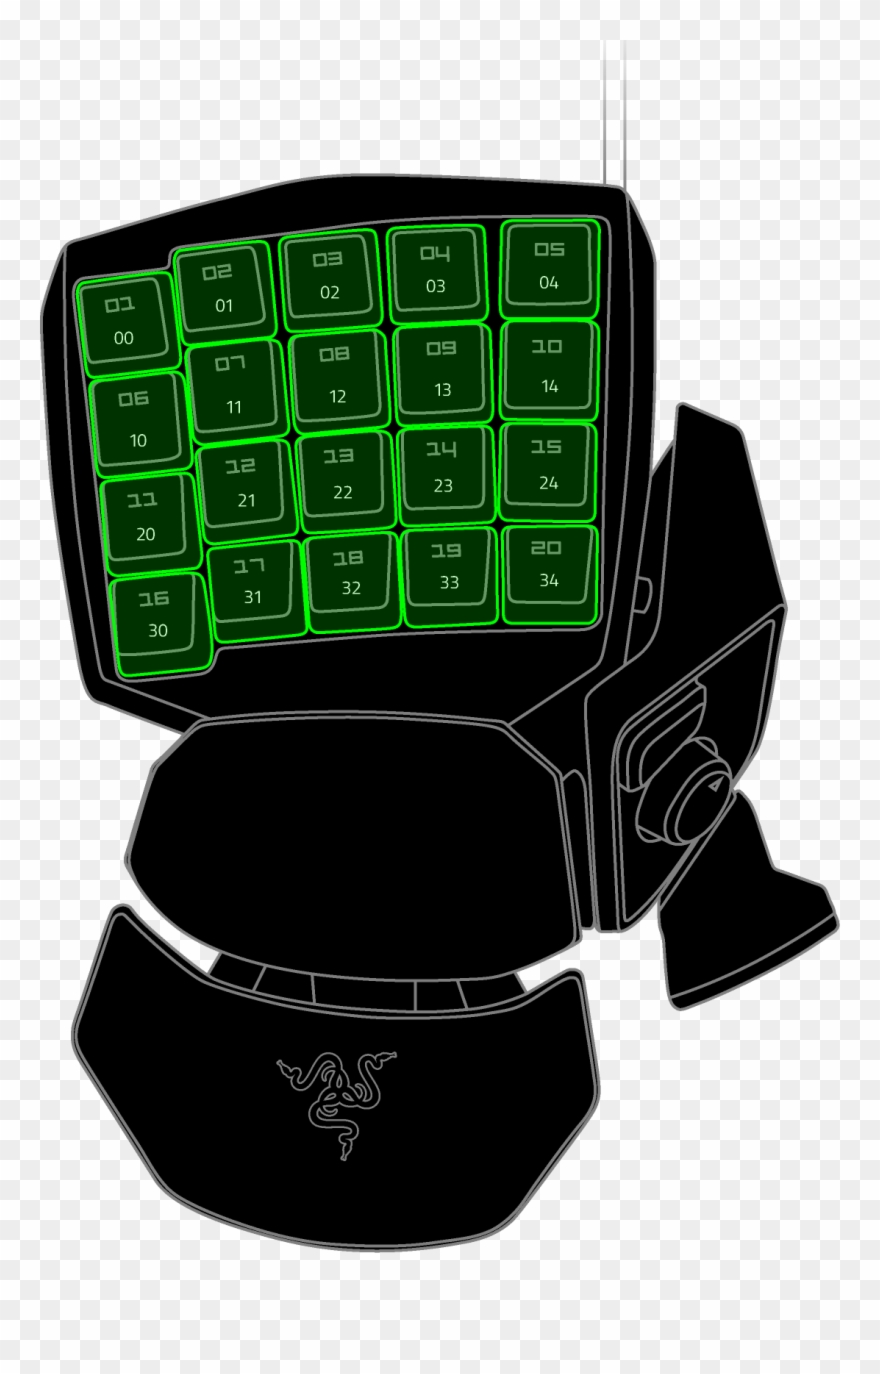 Chroma clipart svg black and white library Keypad Chroma Led Profiles Clipart (#2464882) - PinClipart svg black and white library